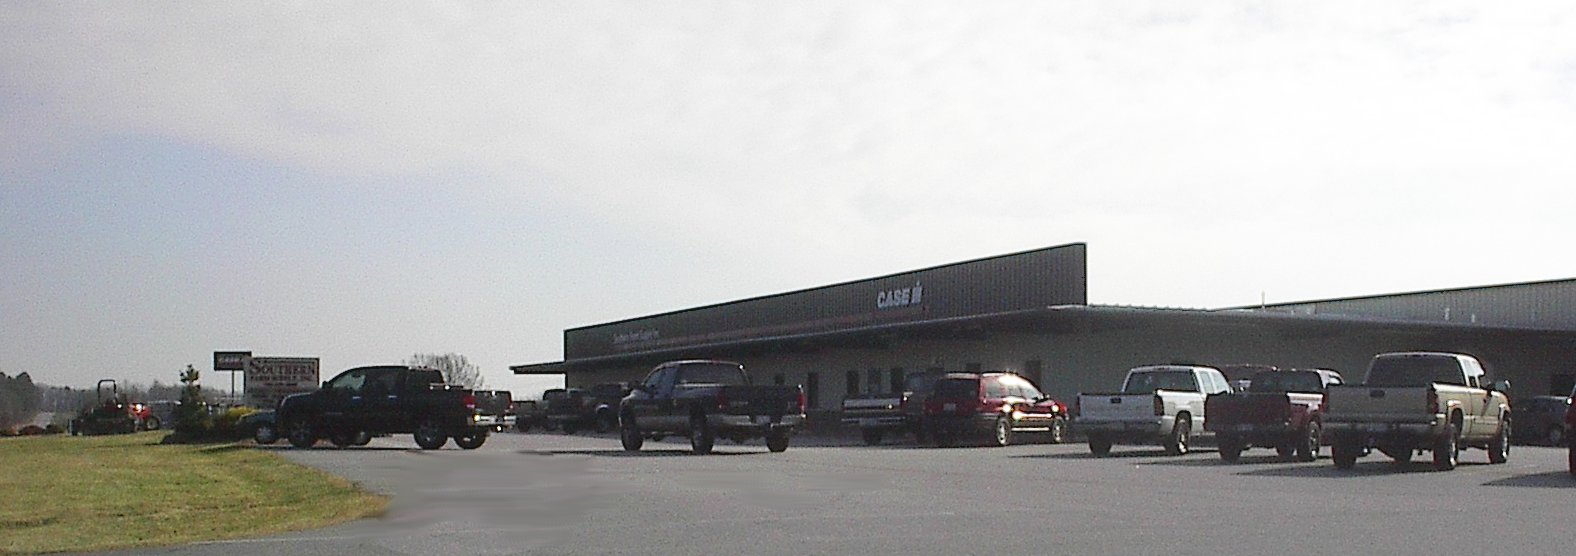 Southern Farm Supply